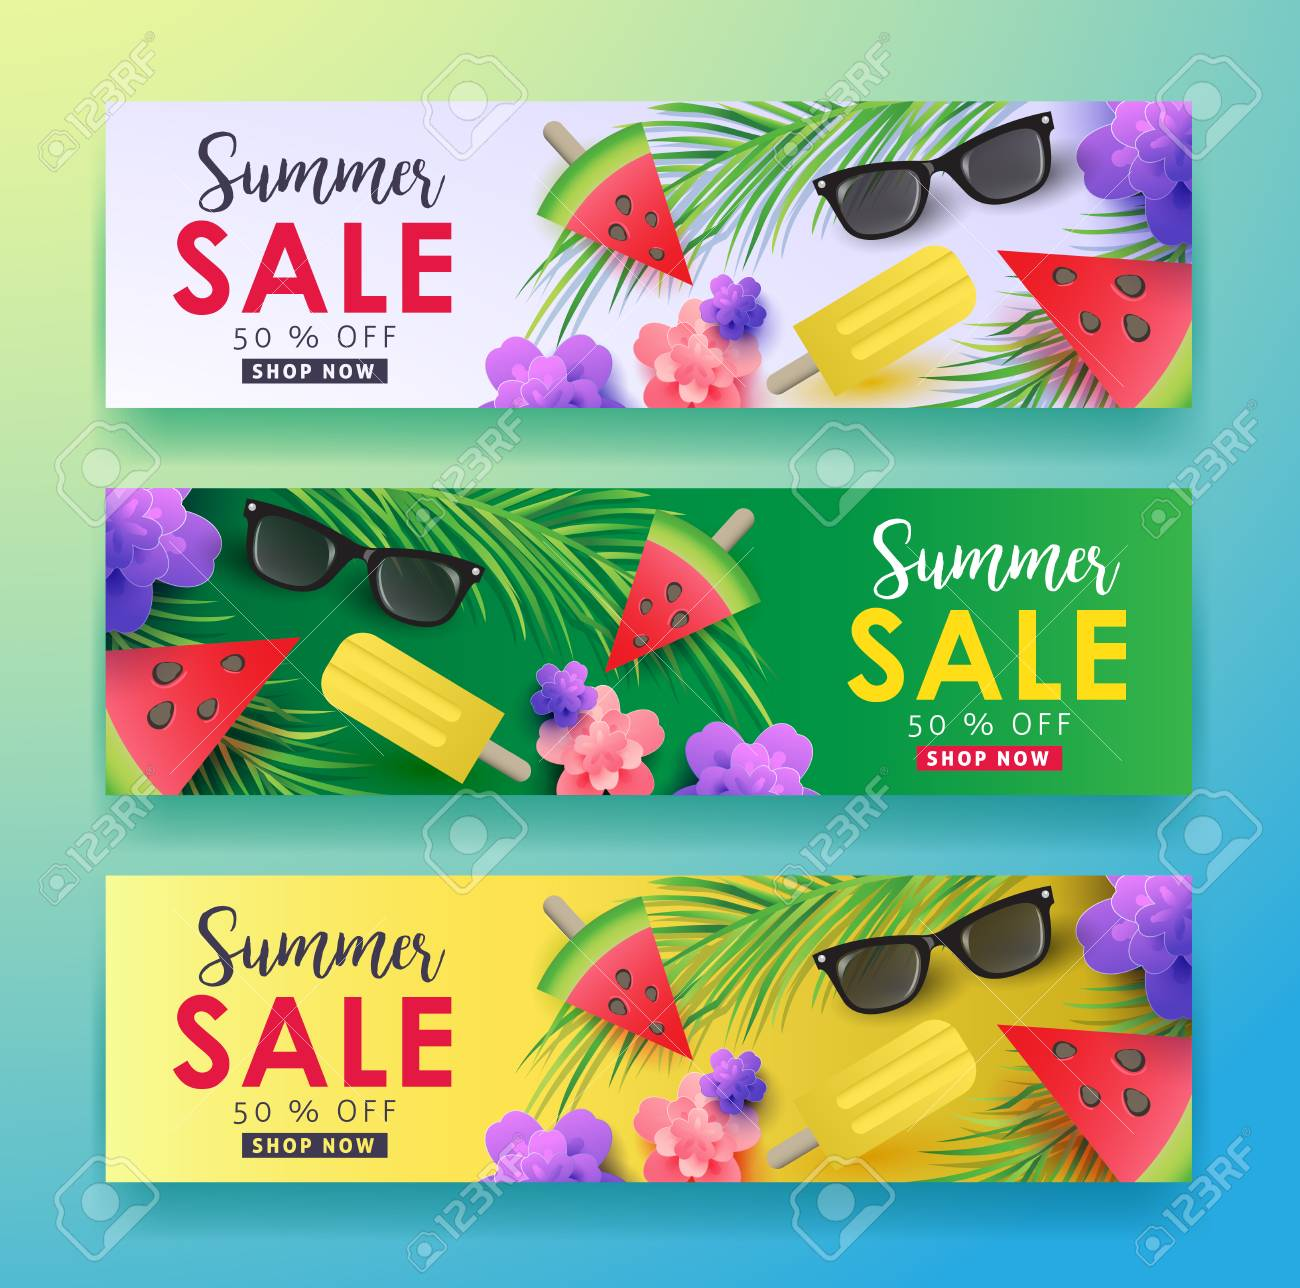 Summer sale background layout for banners,Wallpaper,flyers, invitation, posters, brochure, voucher discount.Vector illustration template. - 74283014